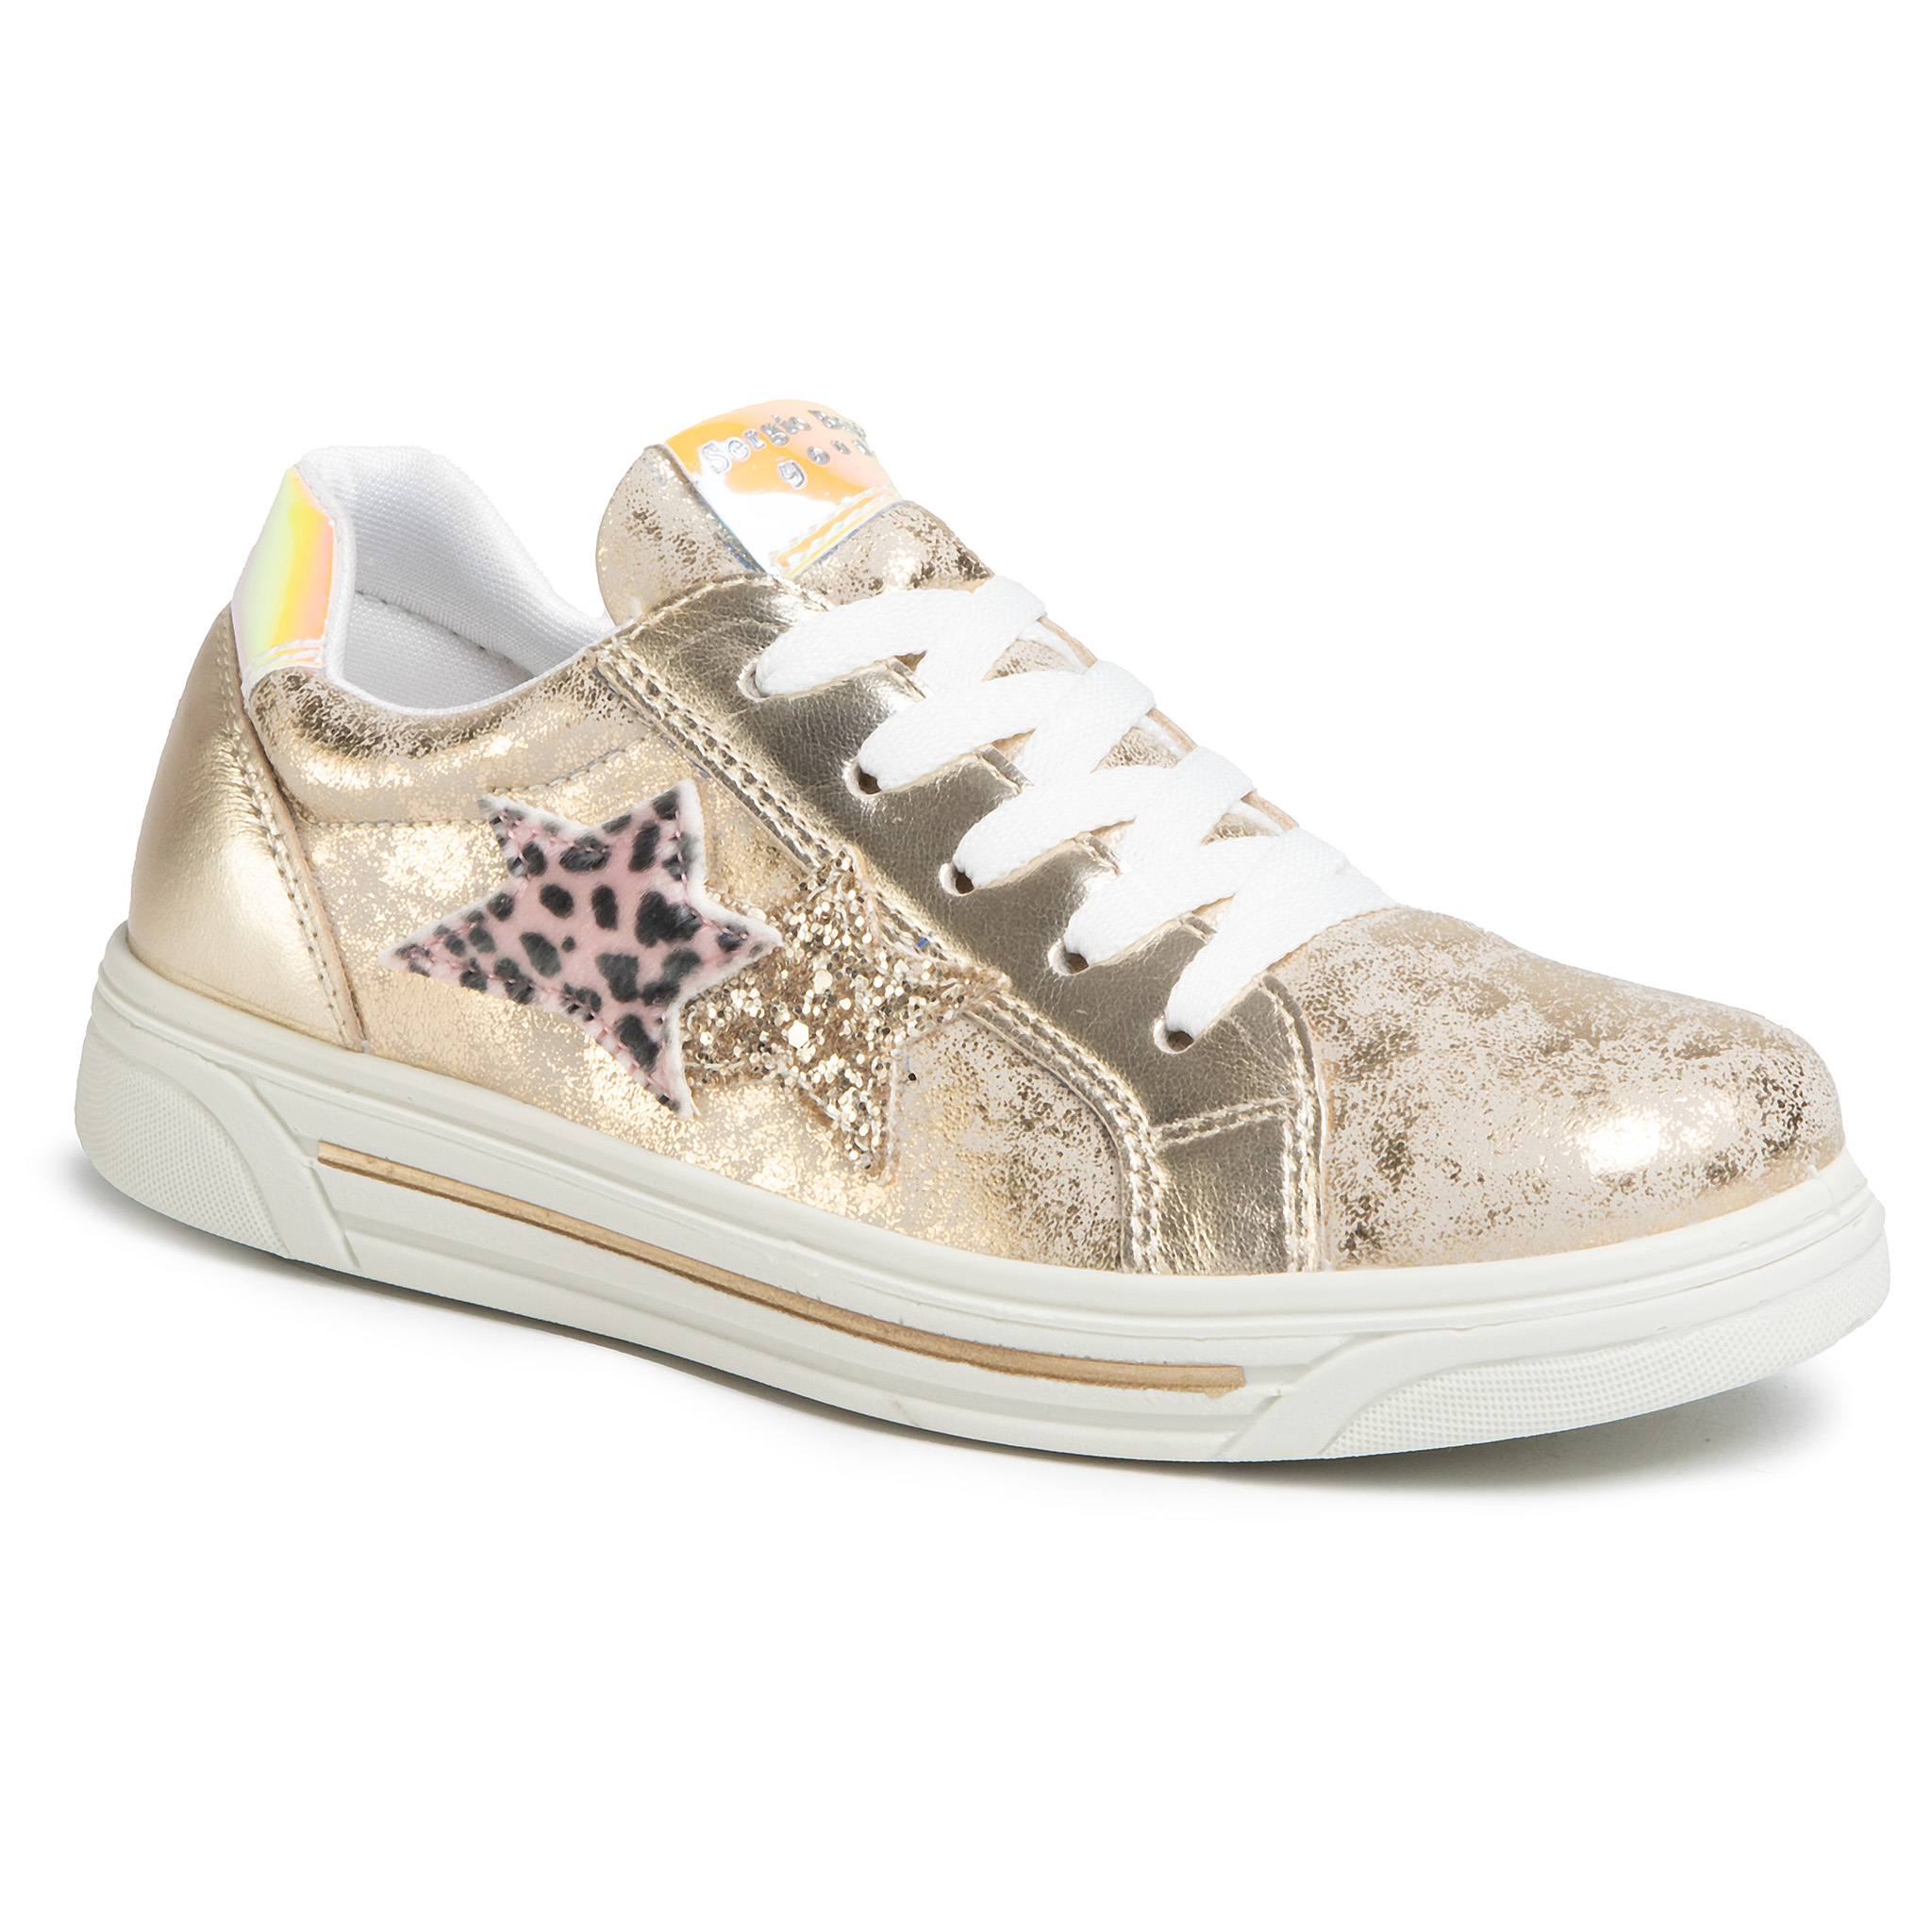 Sneakers SERGIO BARDI YOUNG - SBY-02-03-000039 611